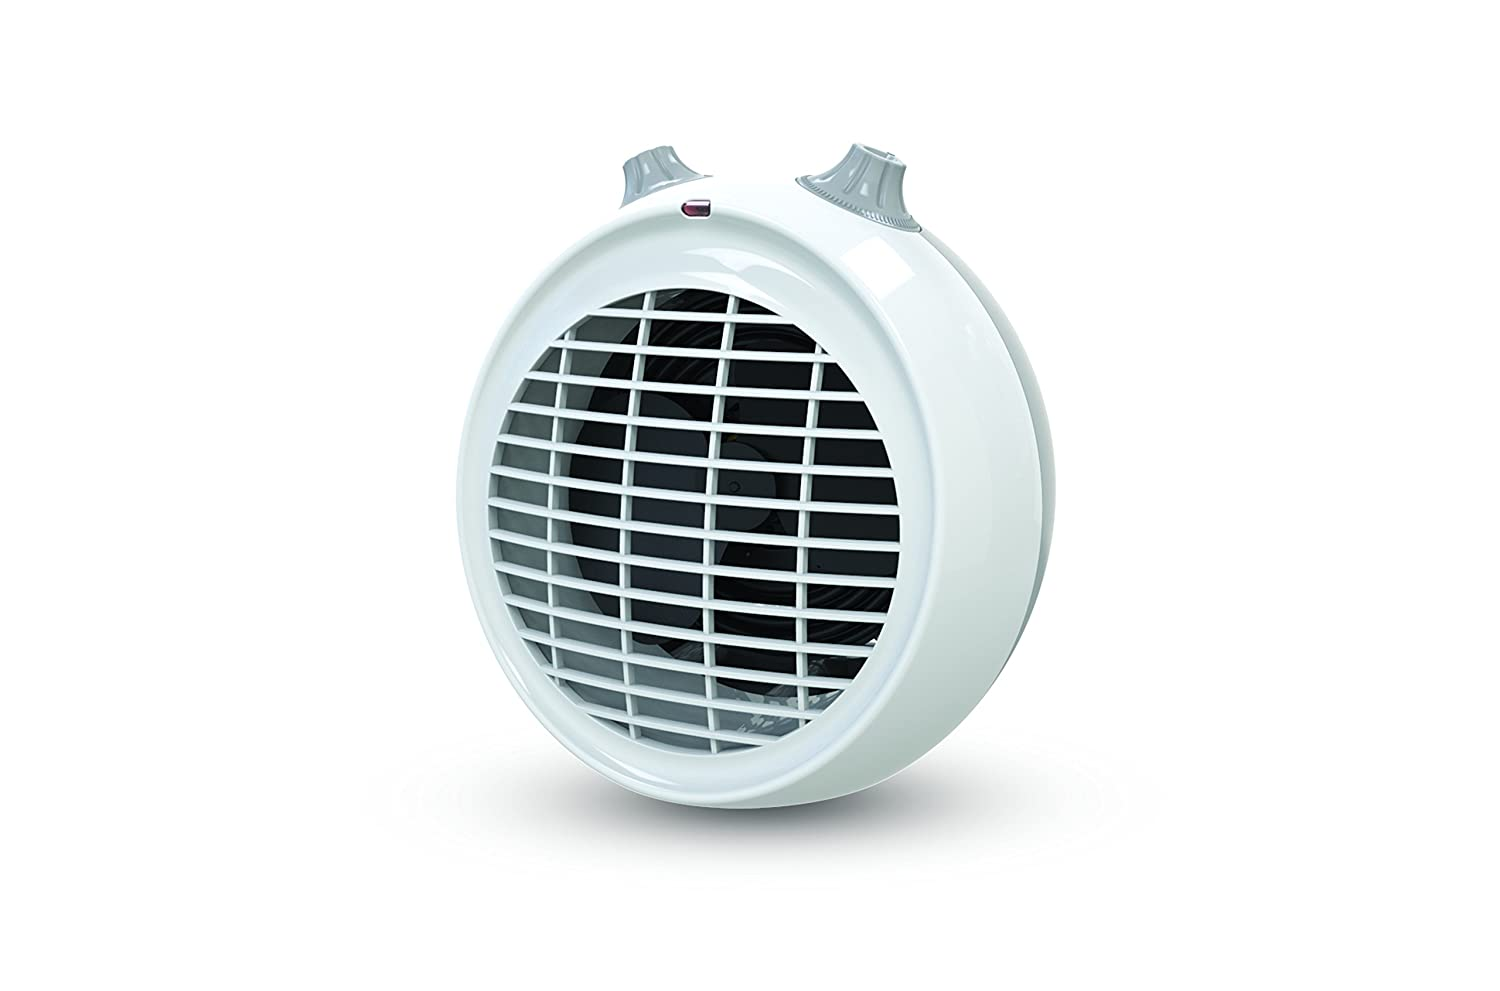 Dimplex DXUF30TN Upright Fan Heater Complete with Thermostat and Choice of Heat Settings, 3000 W, White/Light Grey